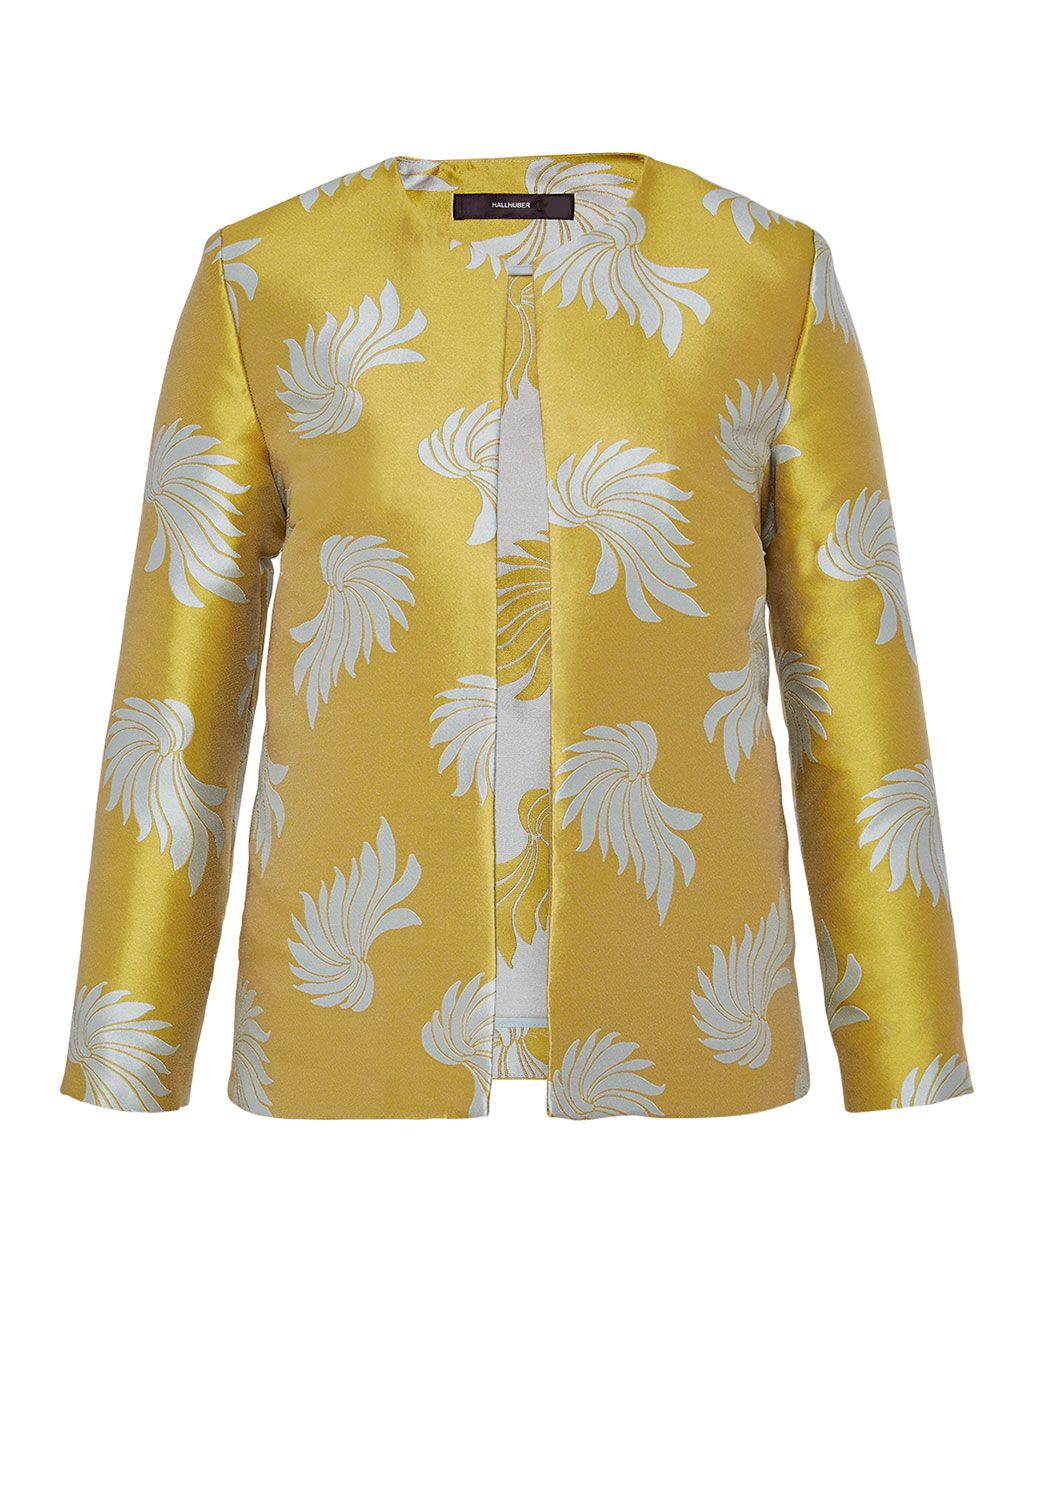 Hallhuber Jacquard jacket with leaf pattern, Yellow